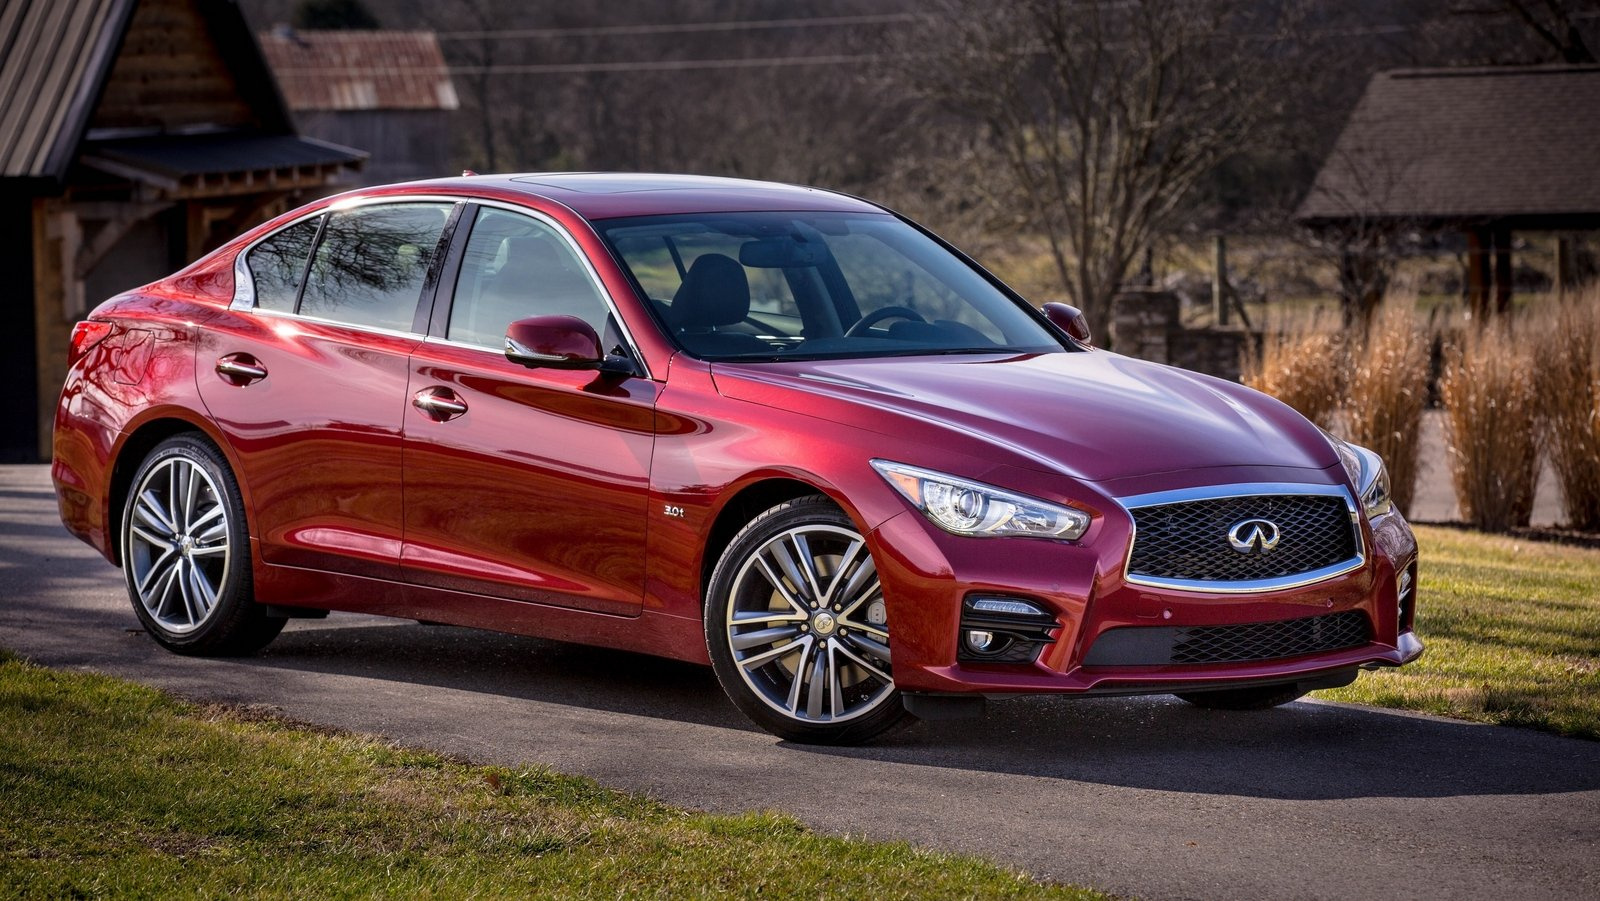 2016 infiniti q50 picture 665248 car review top speed. Black Bedroom Furniture Sets. Home Design Ideas